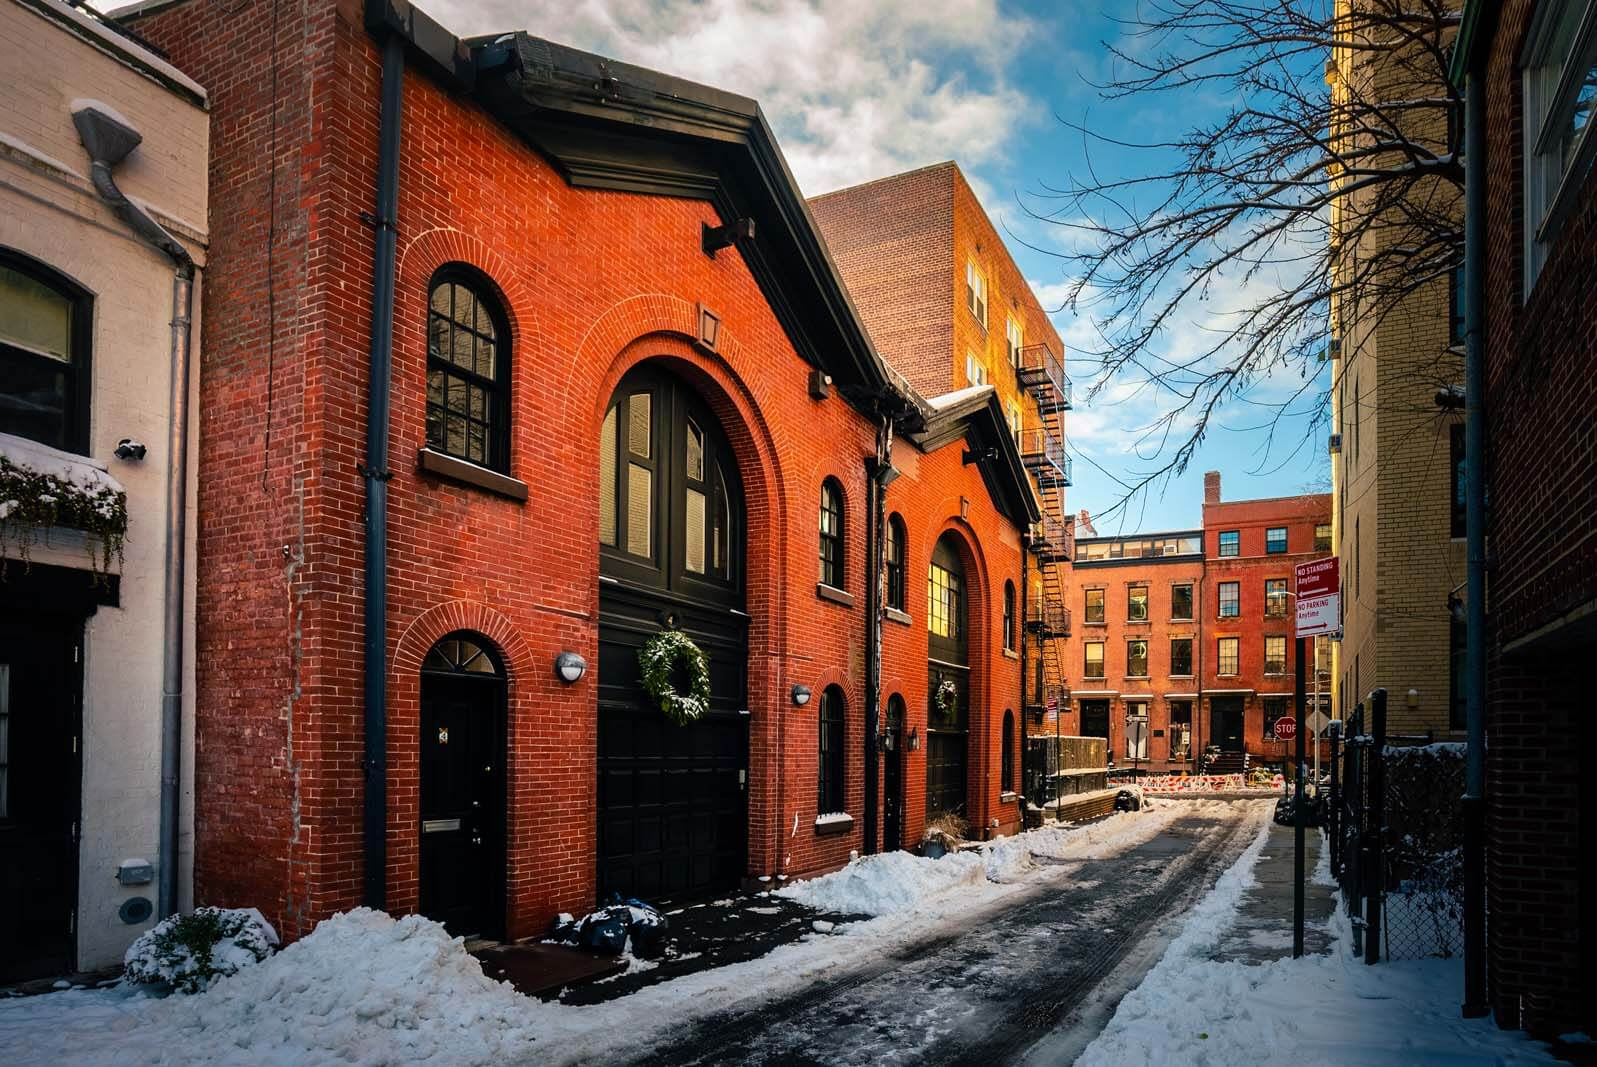 Beautiful Carriage Houses in Brooklyn Heights on a beautiful snowy day